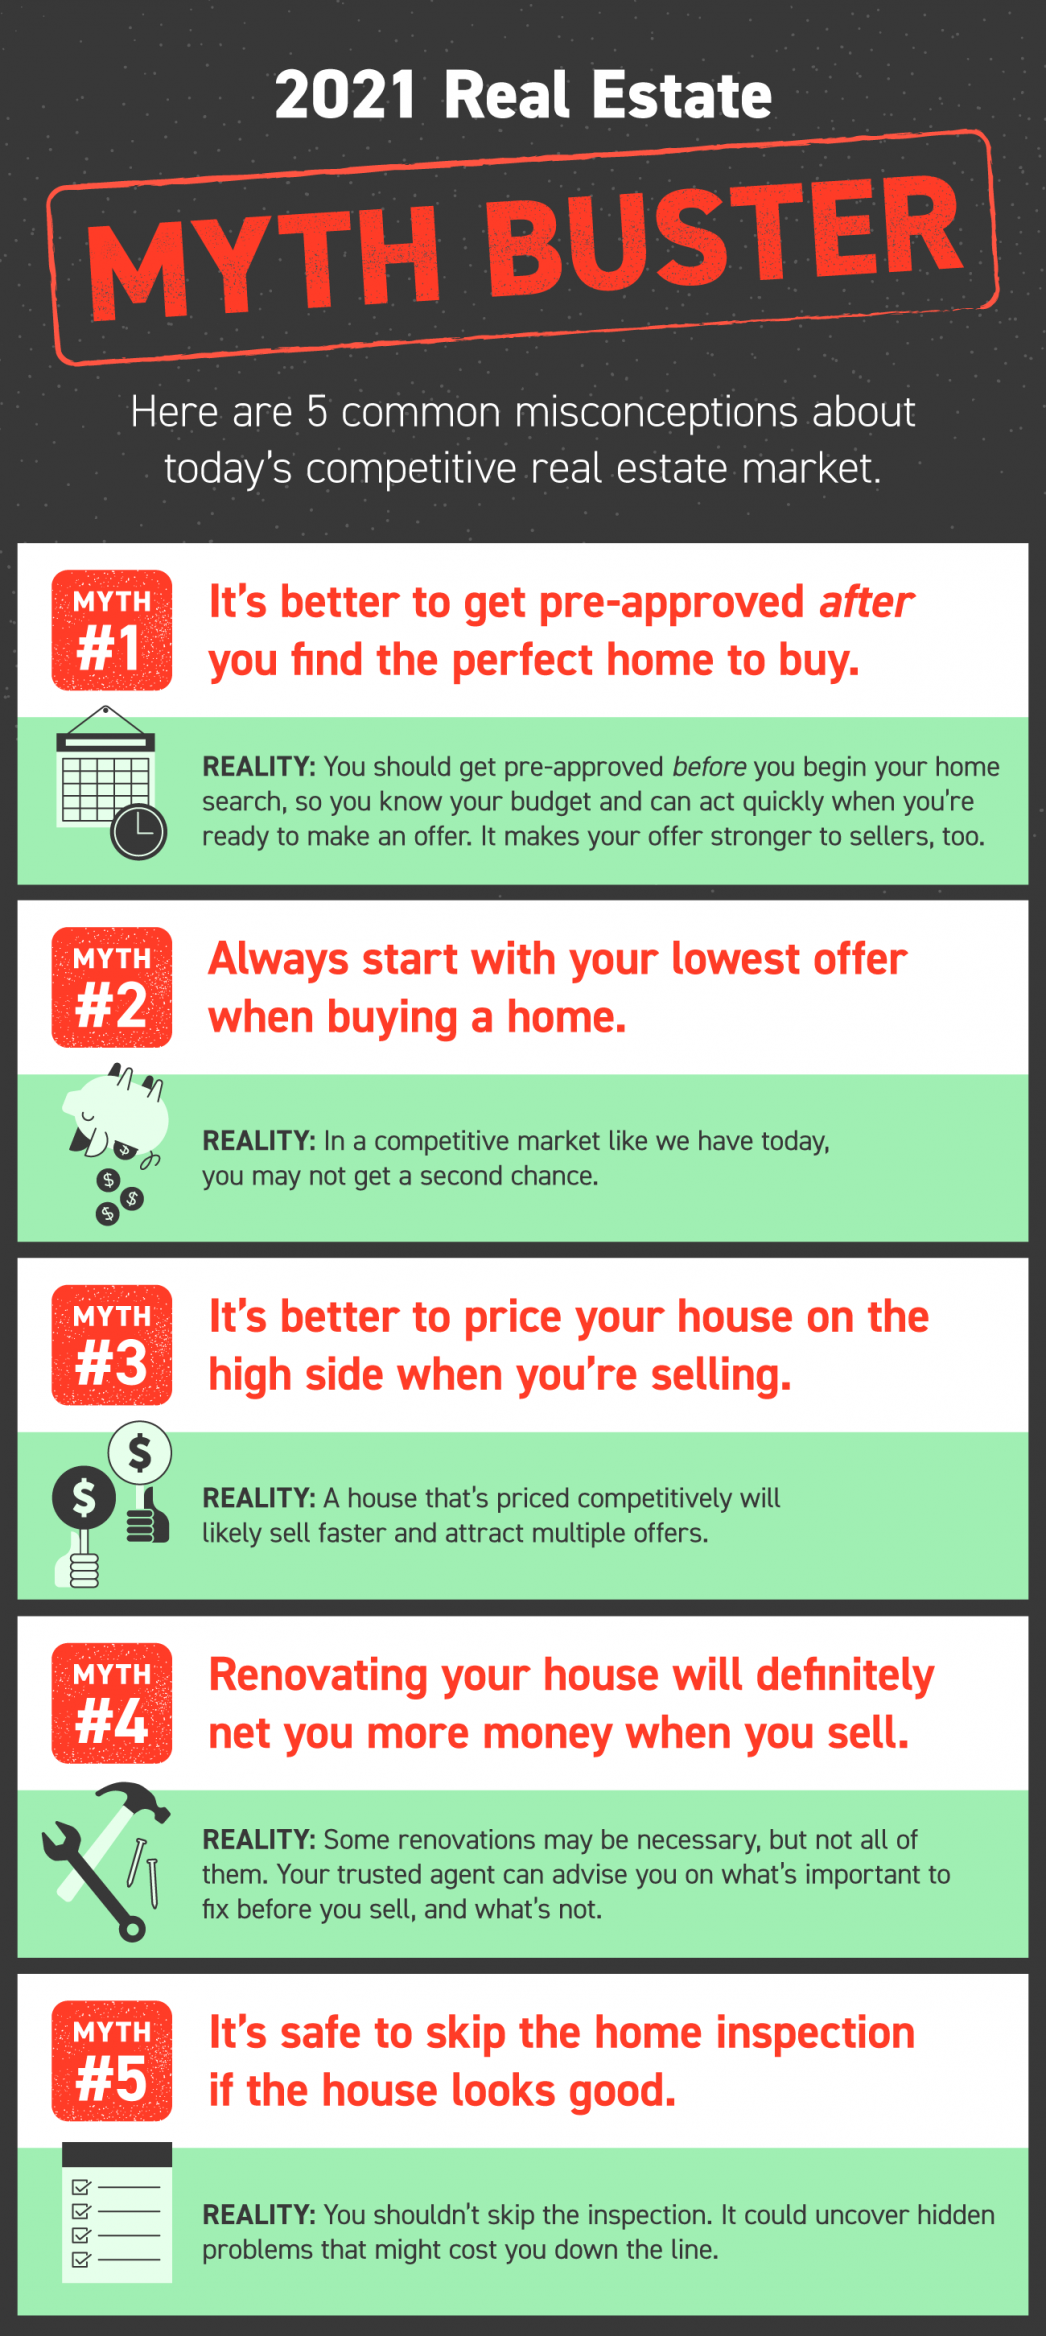 2021 Real Estate Myth Buster   Maine Real Estate Blog   Fontaine Family - The Real Estate Leader   Auburn, Scarborough, Maine